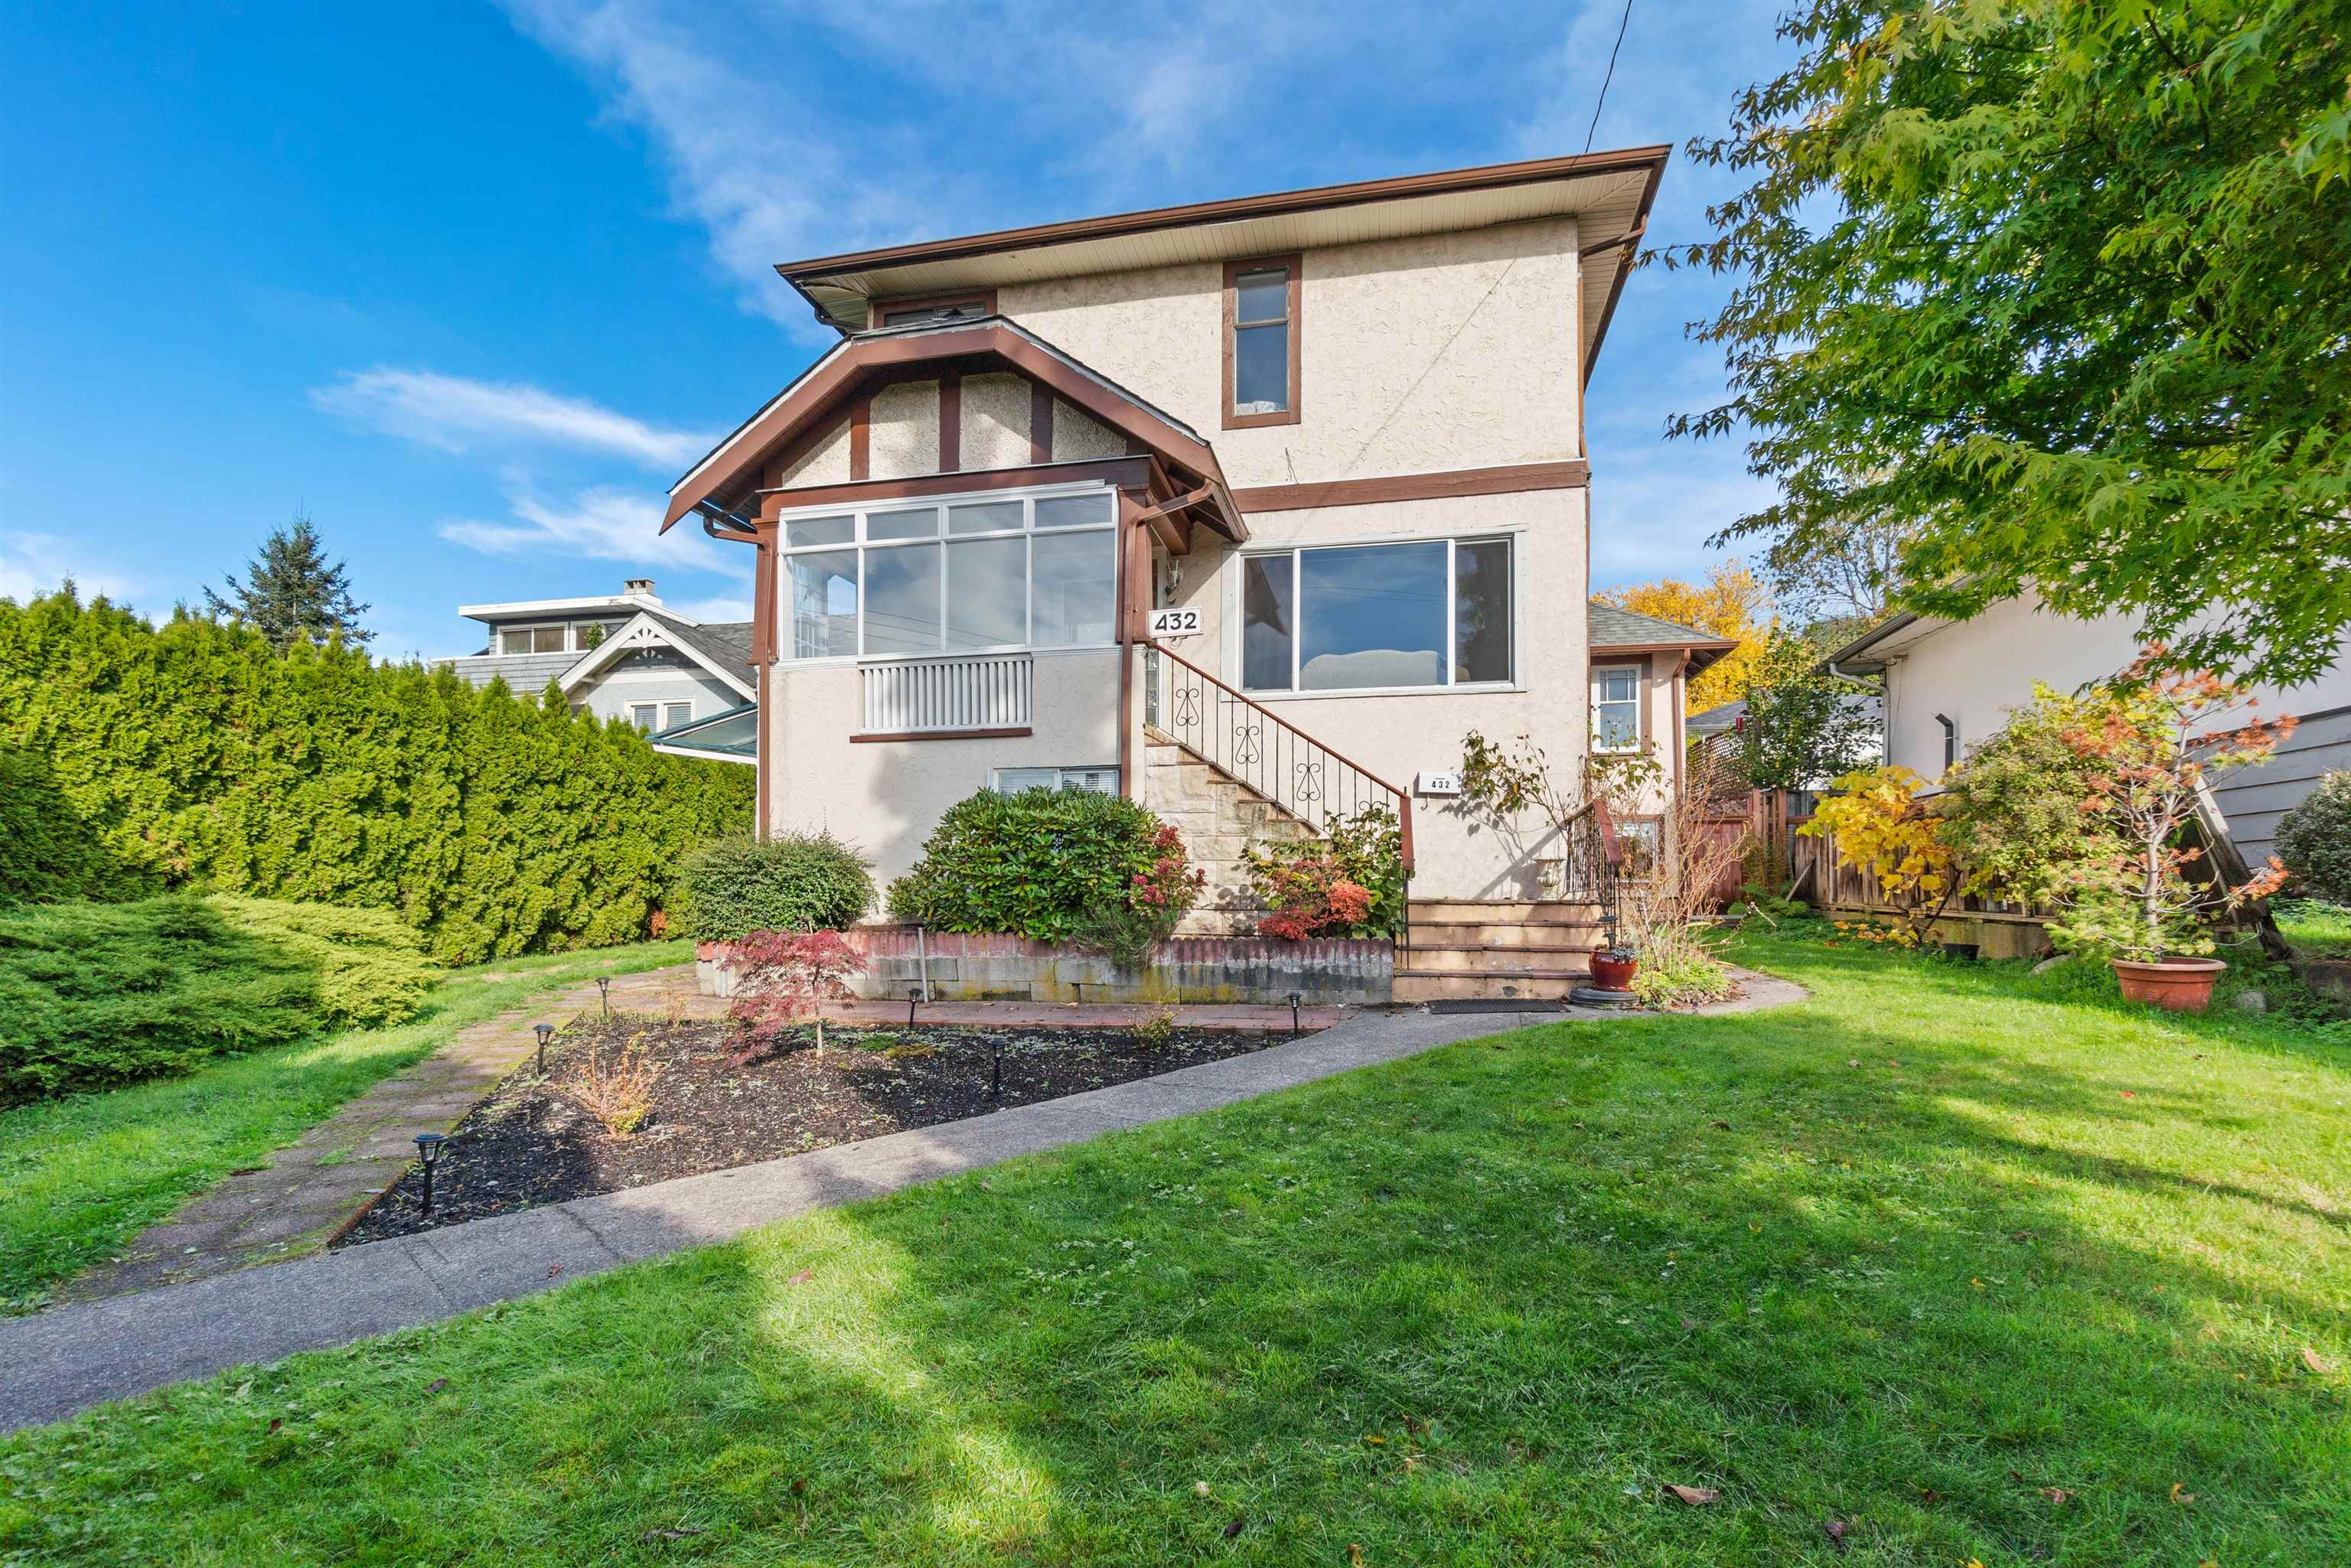 432 E 6TH STREET - Lower Lonsdale House/Single Family for sale, 6 Bedrooms (R2628245) - #1